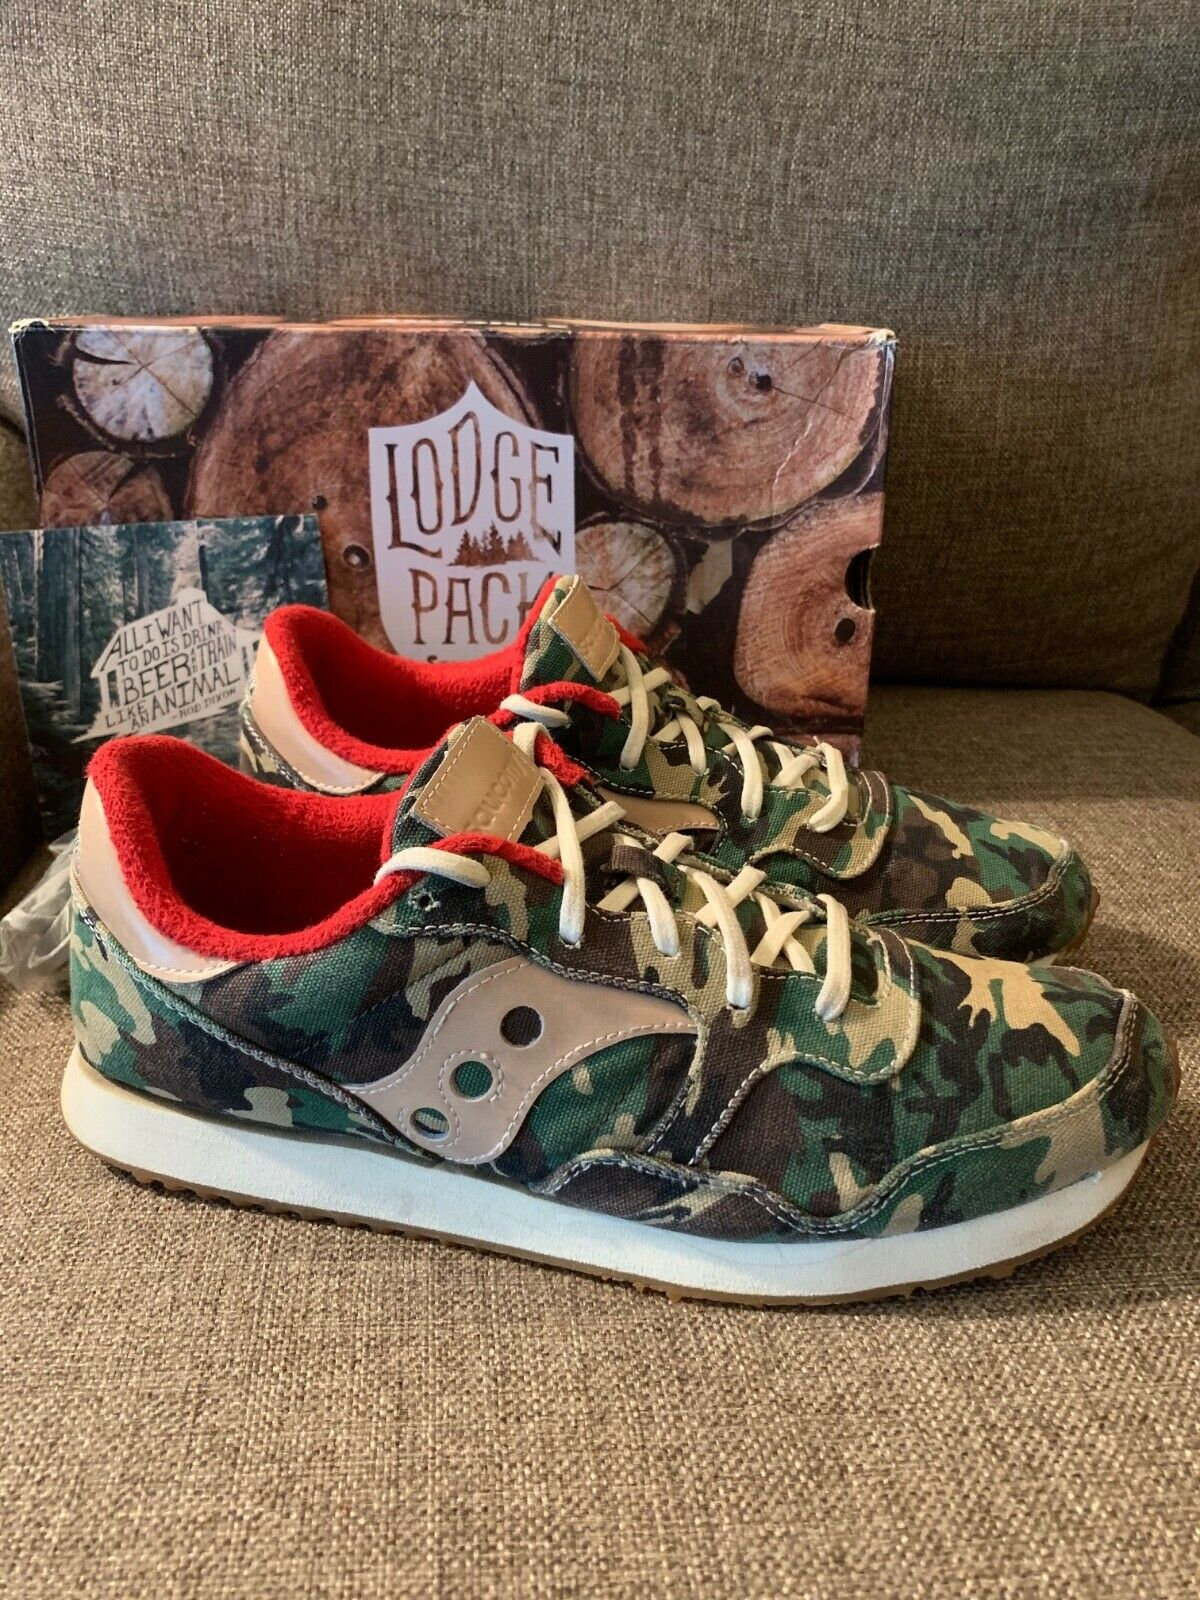 SAUCONY DXN Trainers Lodge Pack CAMO, size 11 Mens, Excellent Condition